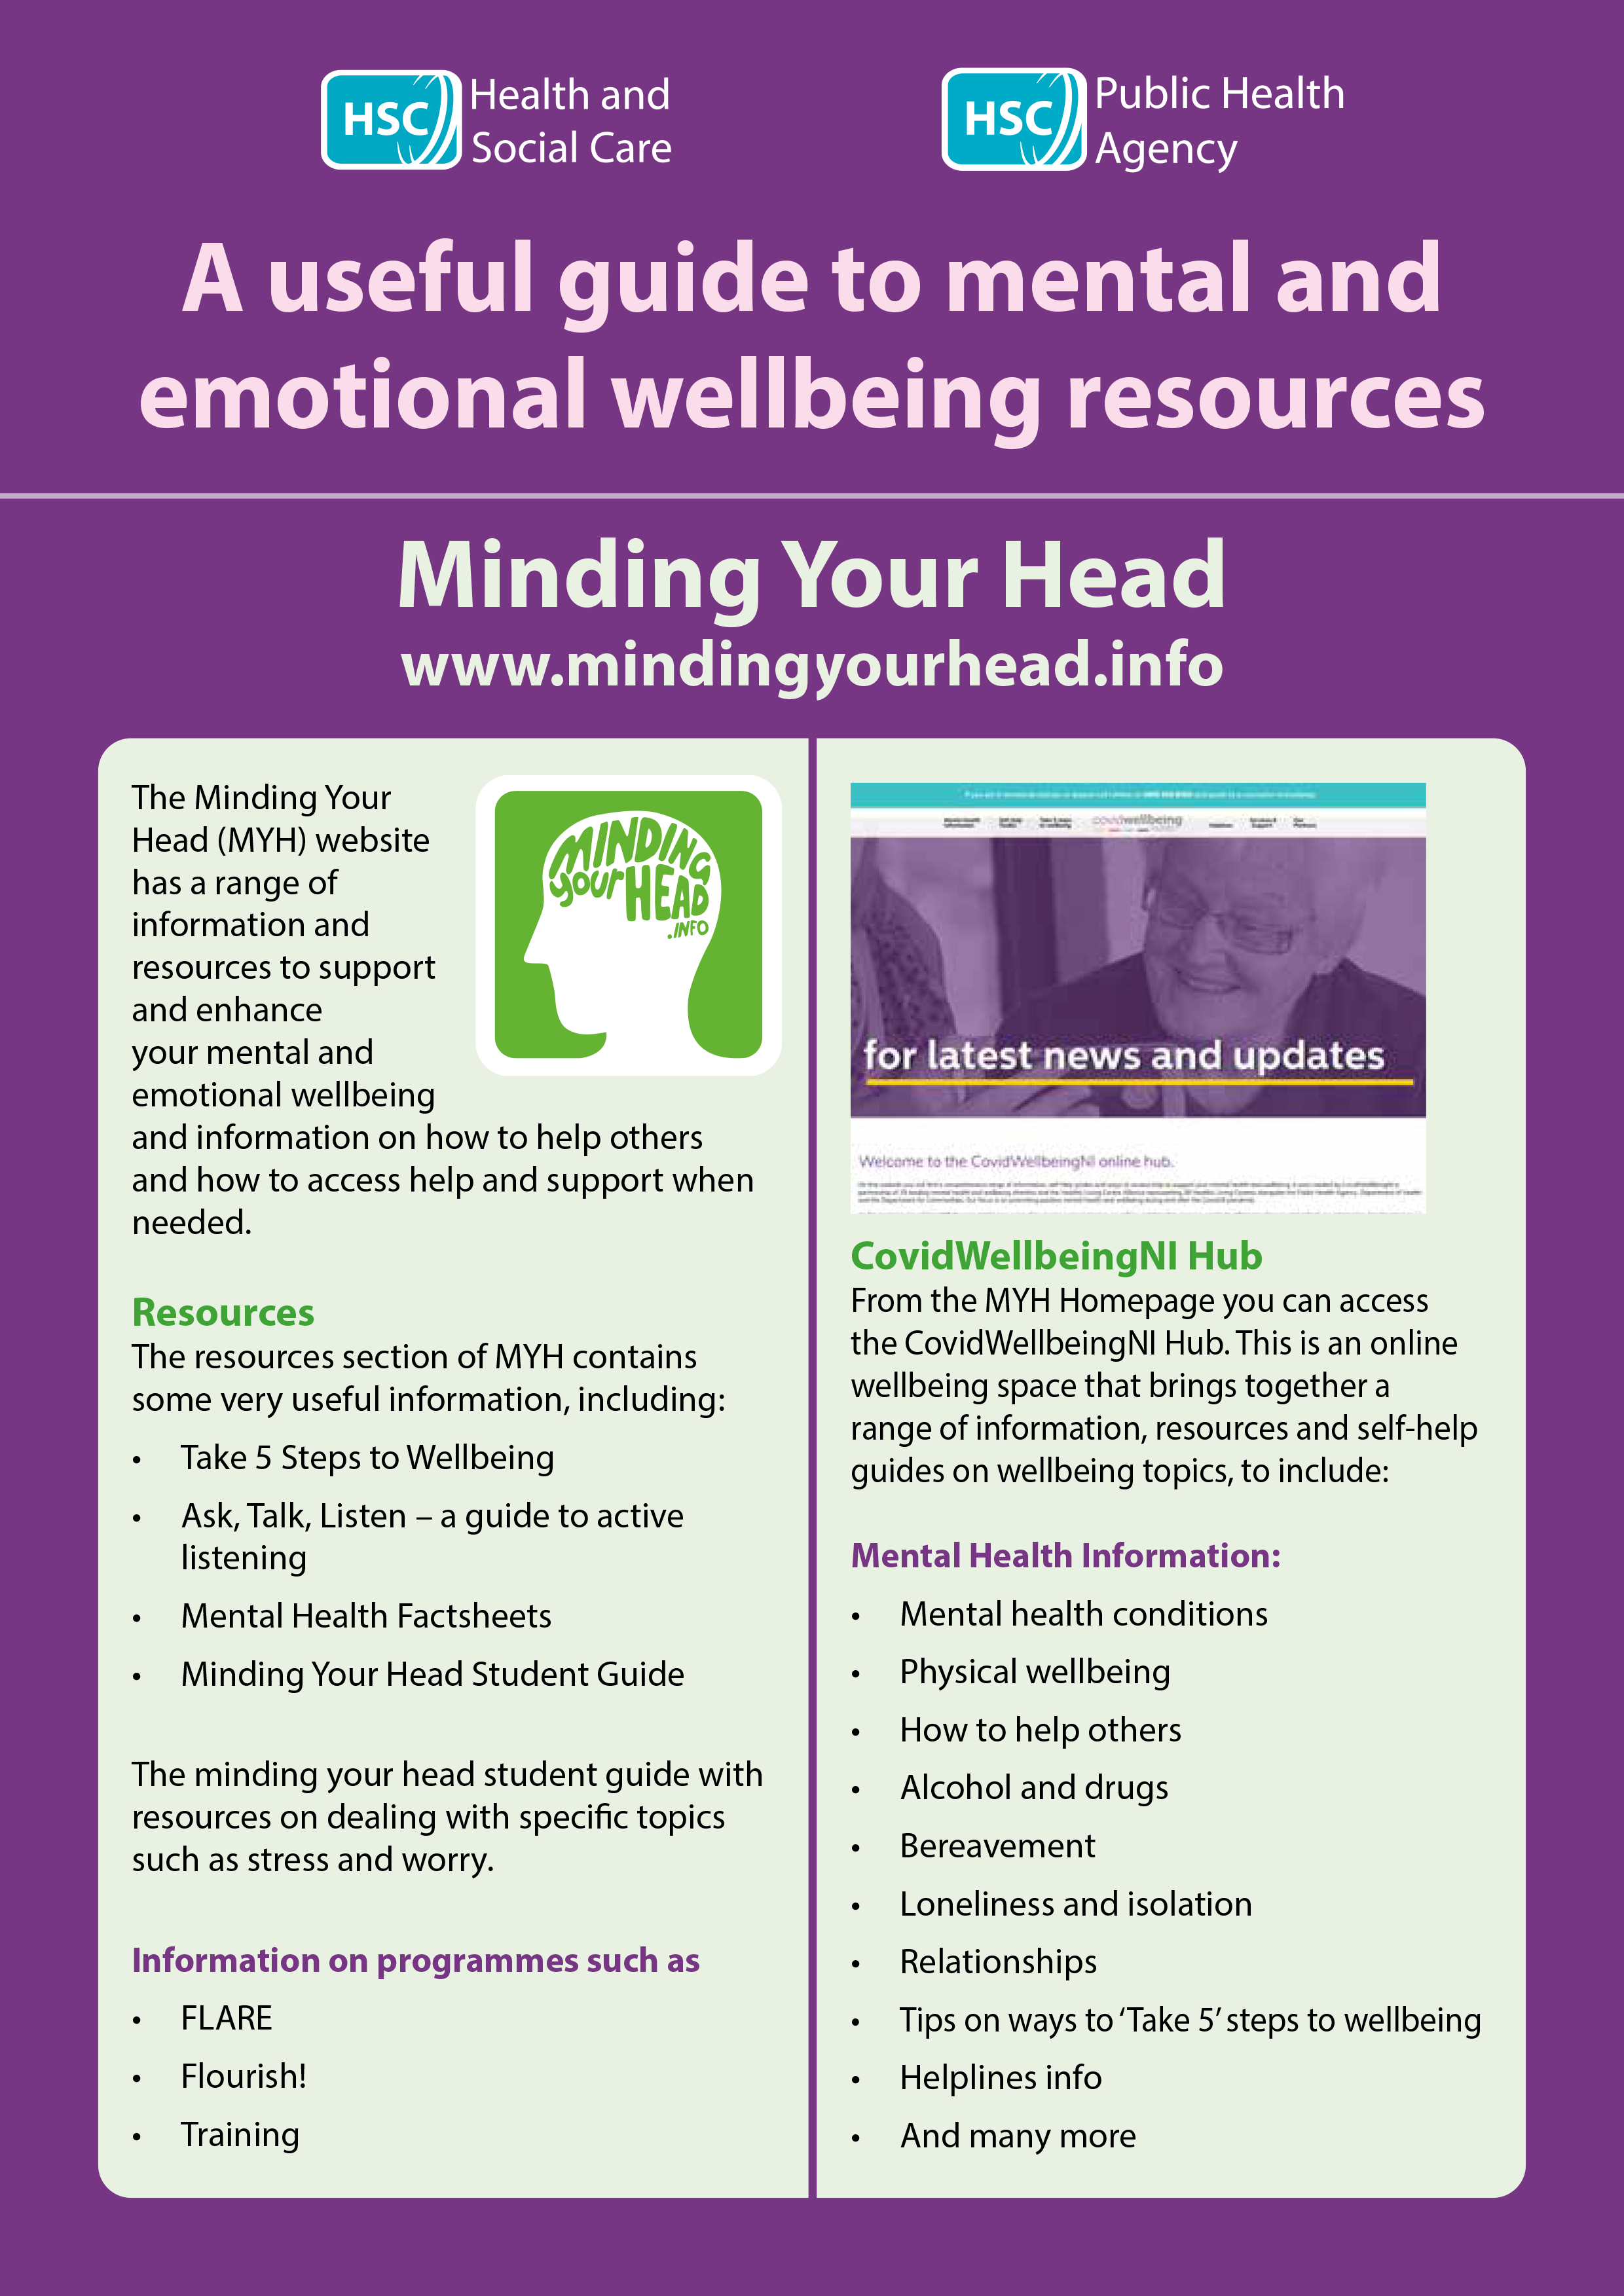 Useful guide to mental and emotional wellbeing resources